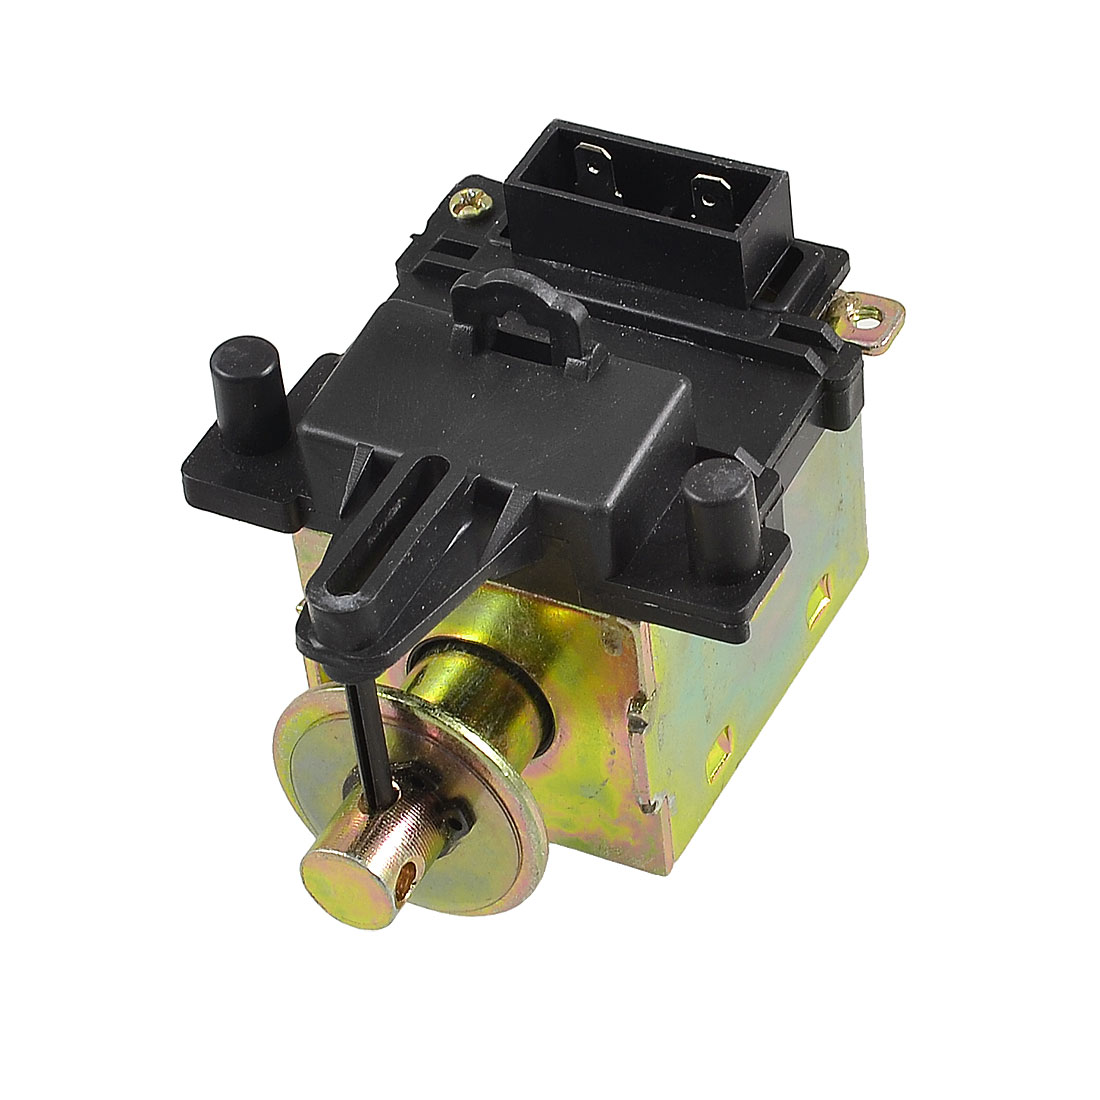 DC 200V Water Drain Electromagnetic Solenoid Valve for Swan Washing Machine